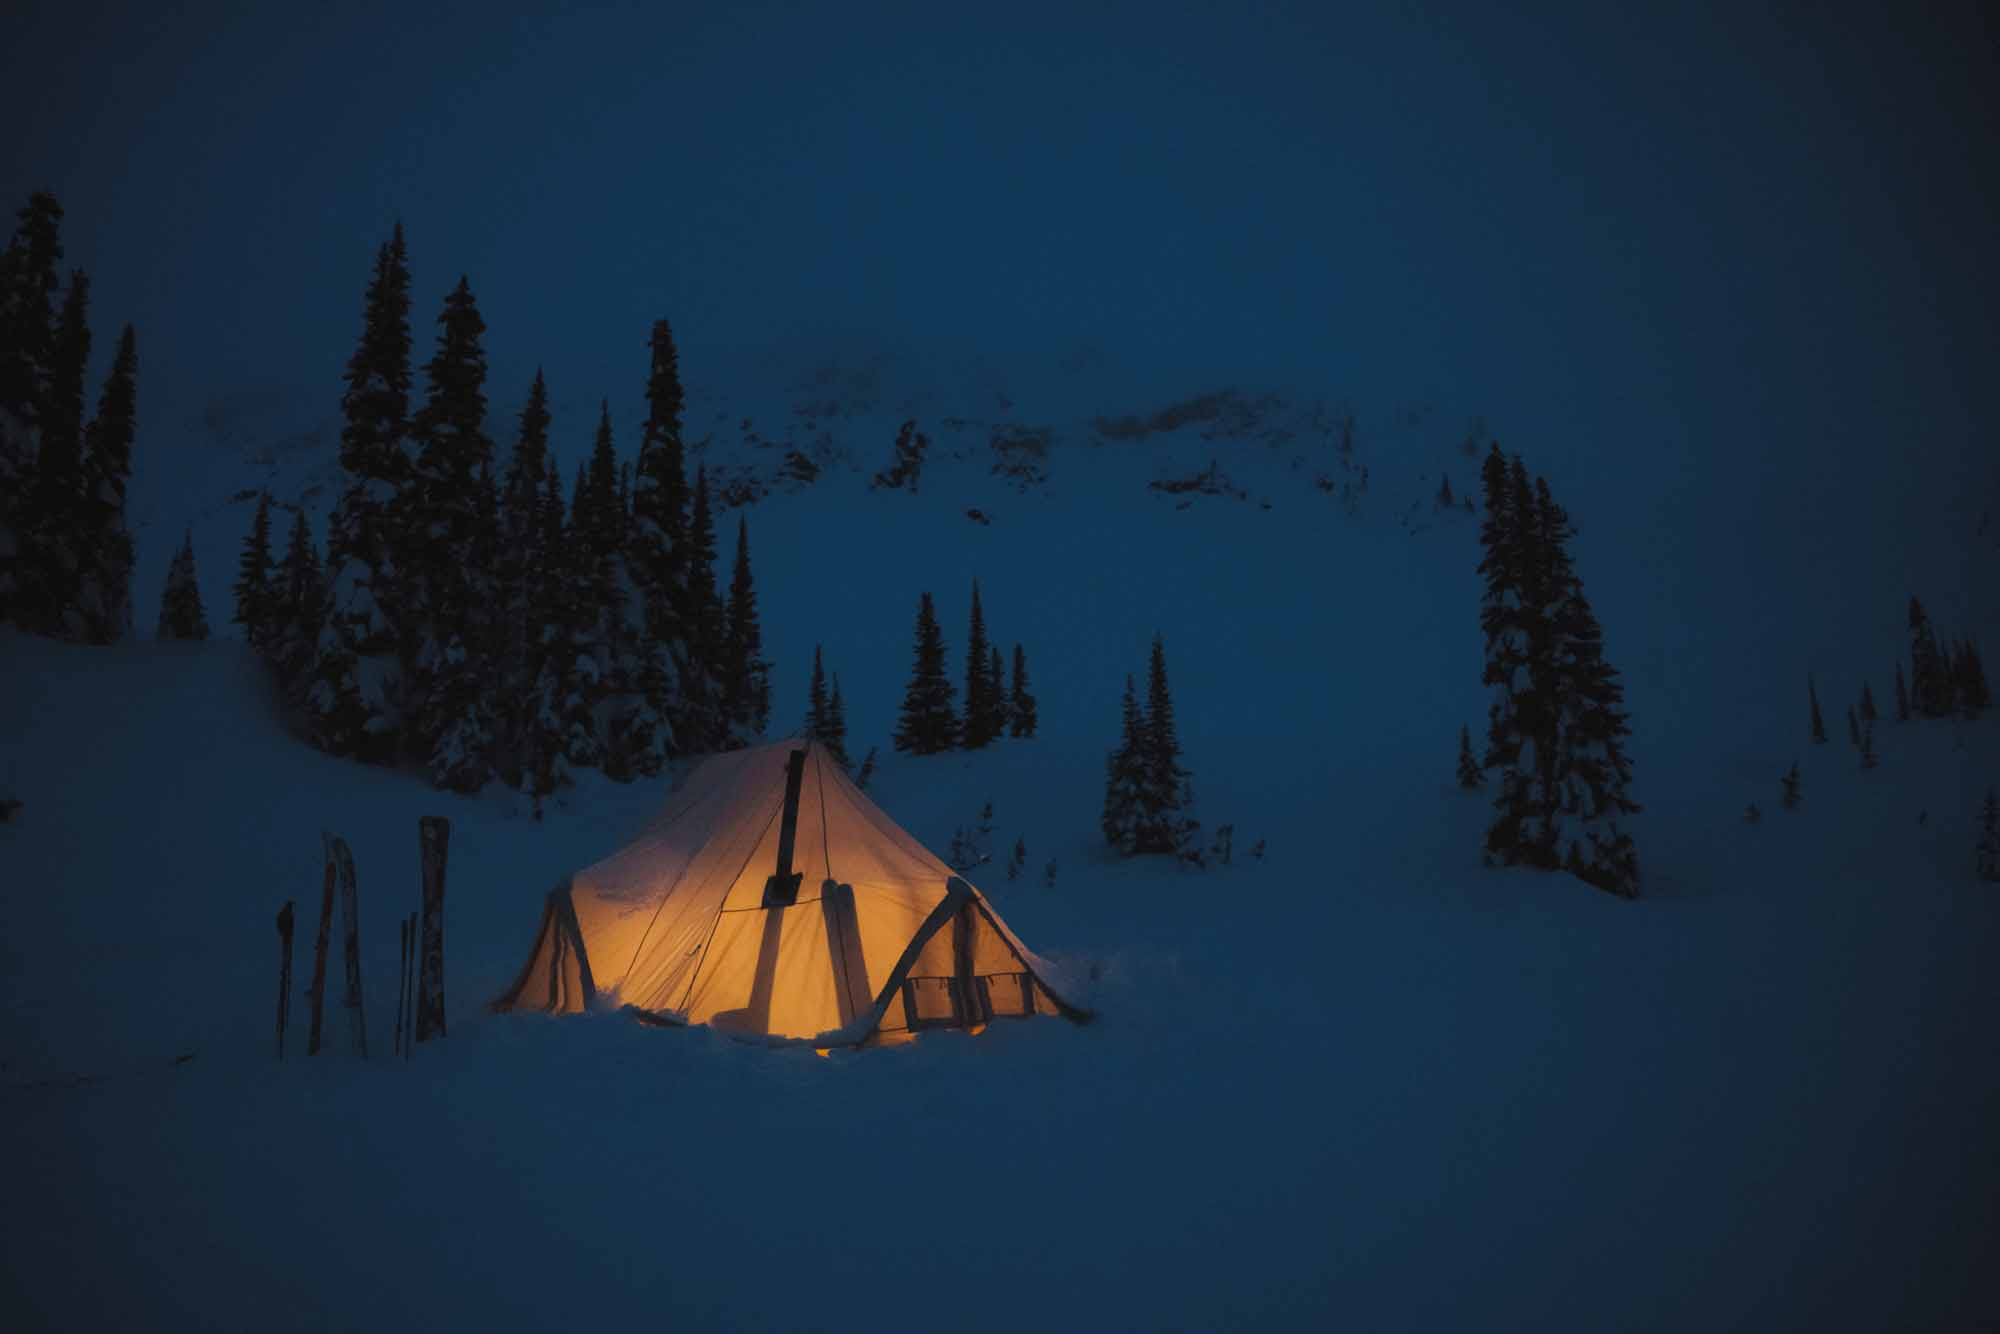 The-Epitome-of-Untouched-Heli-Camping-in-the-Alpine-photo-by-Michael-Overbeck-tent